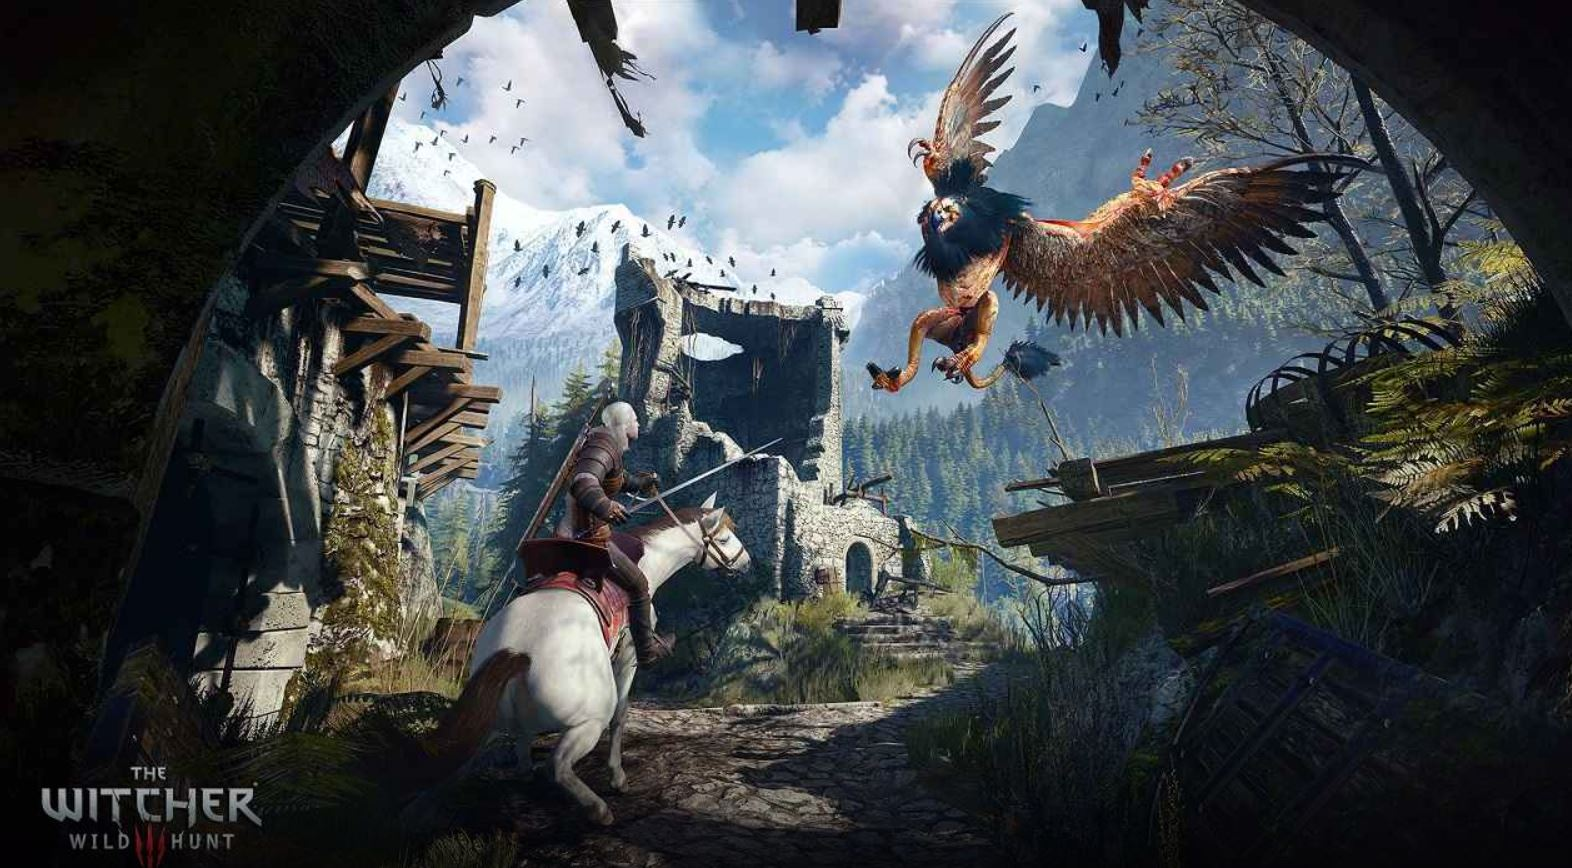 epic-games-15-free-games-witcher-3